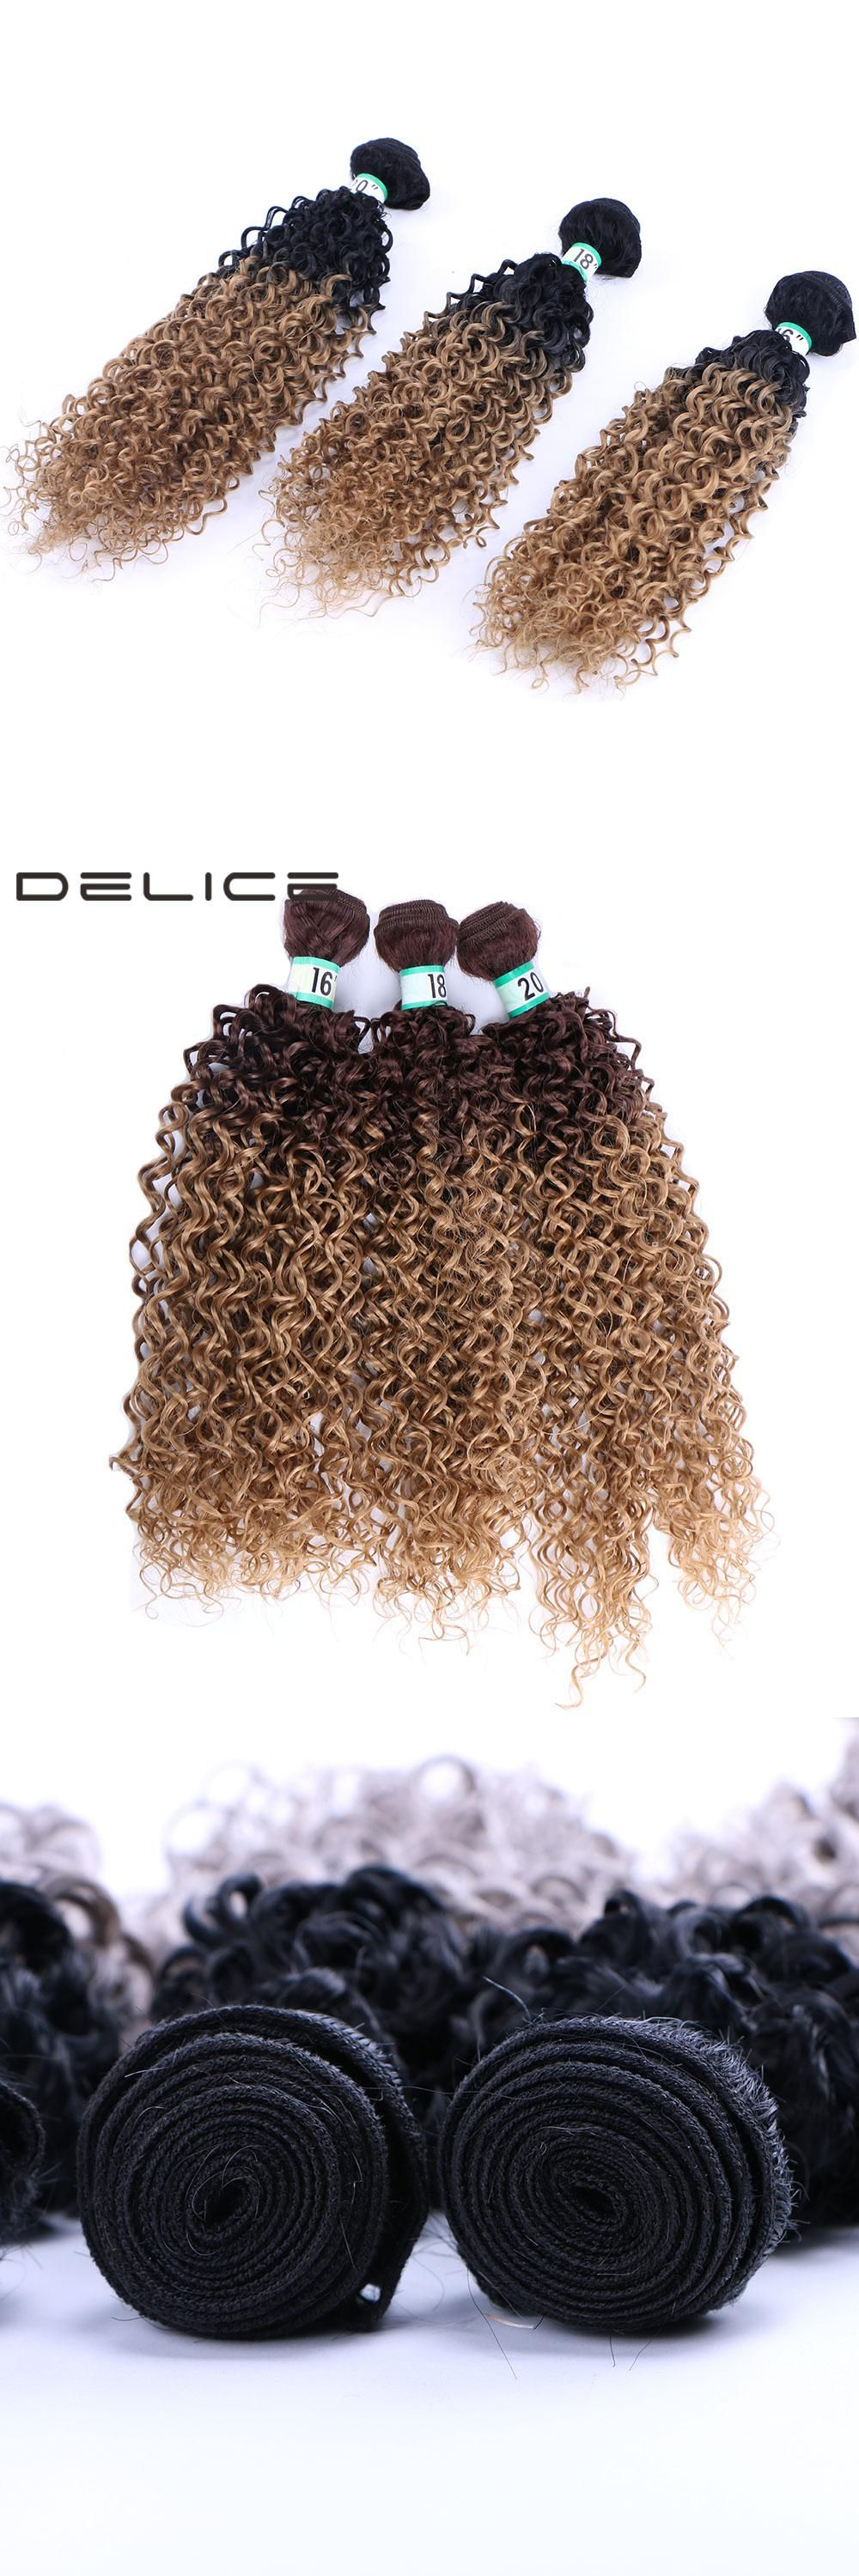 Delice Black Brown Ombre Kinky Curly Hair Weaving 3pcspack